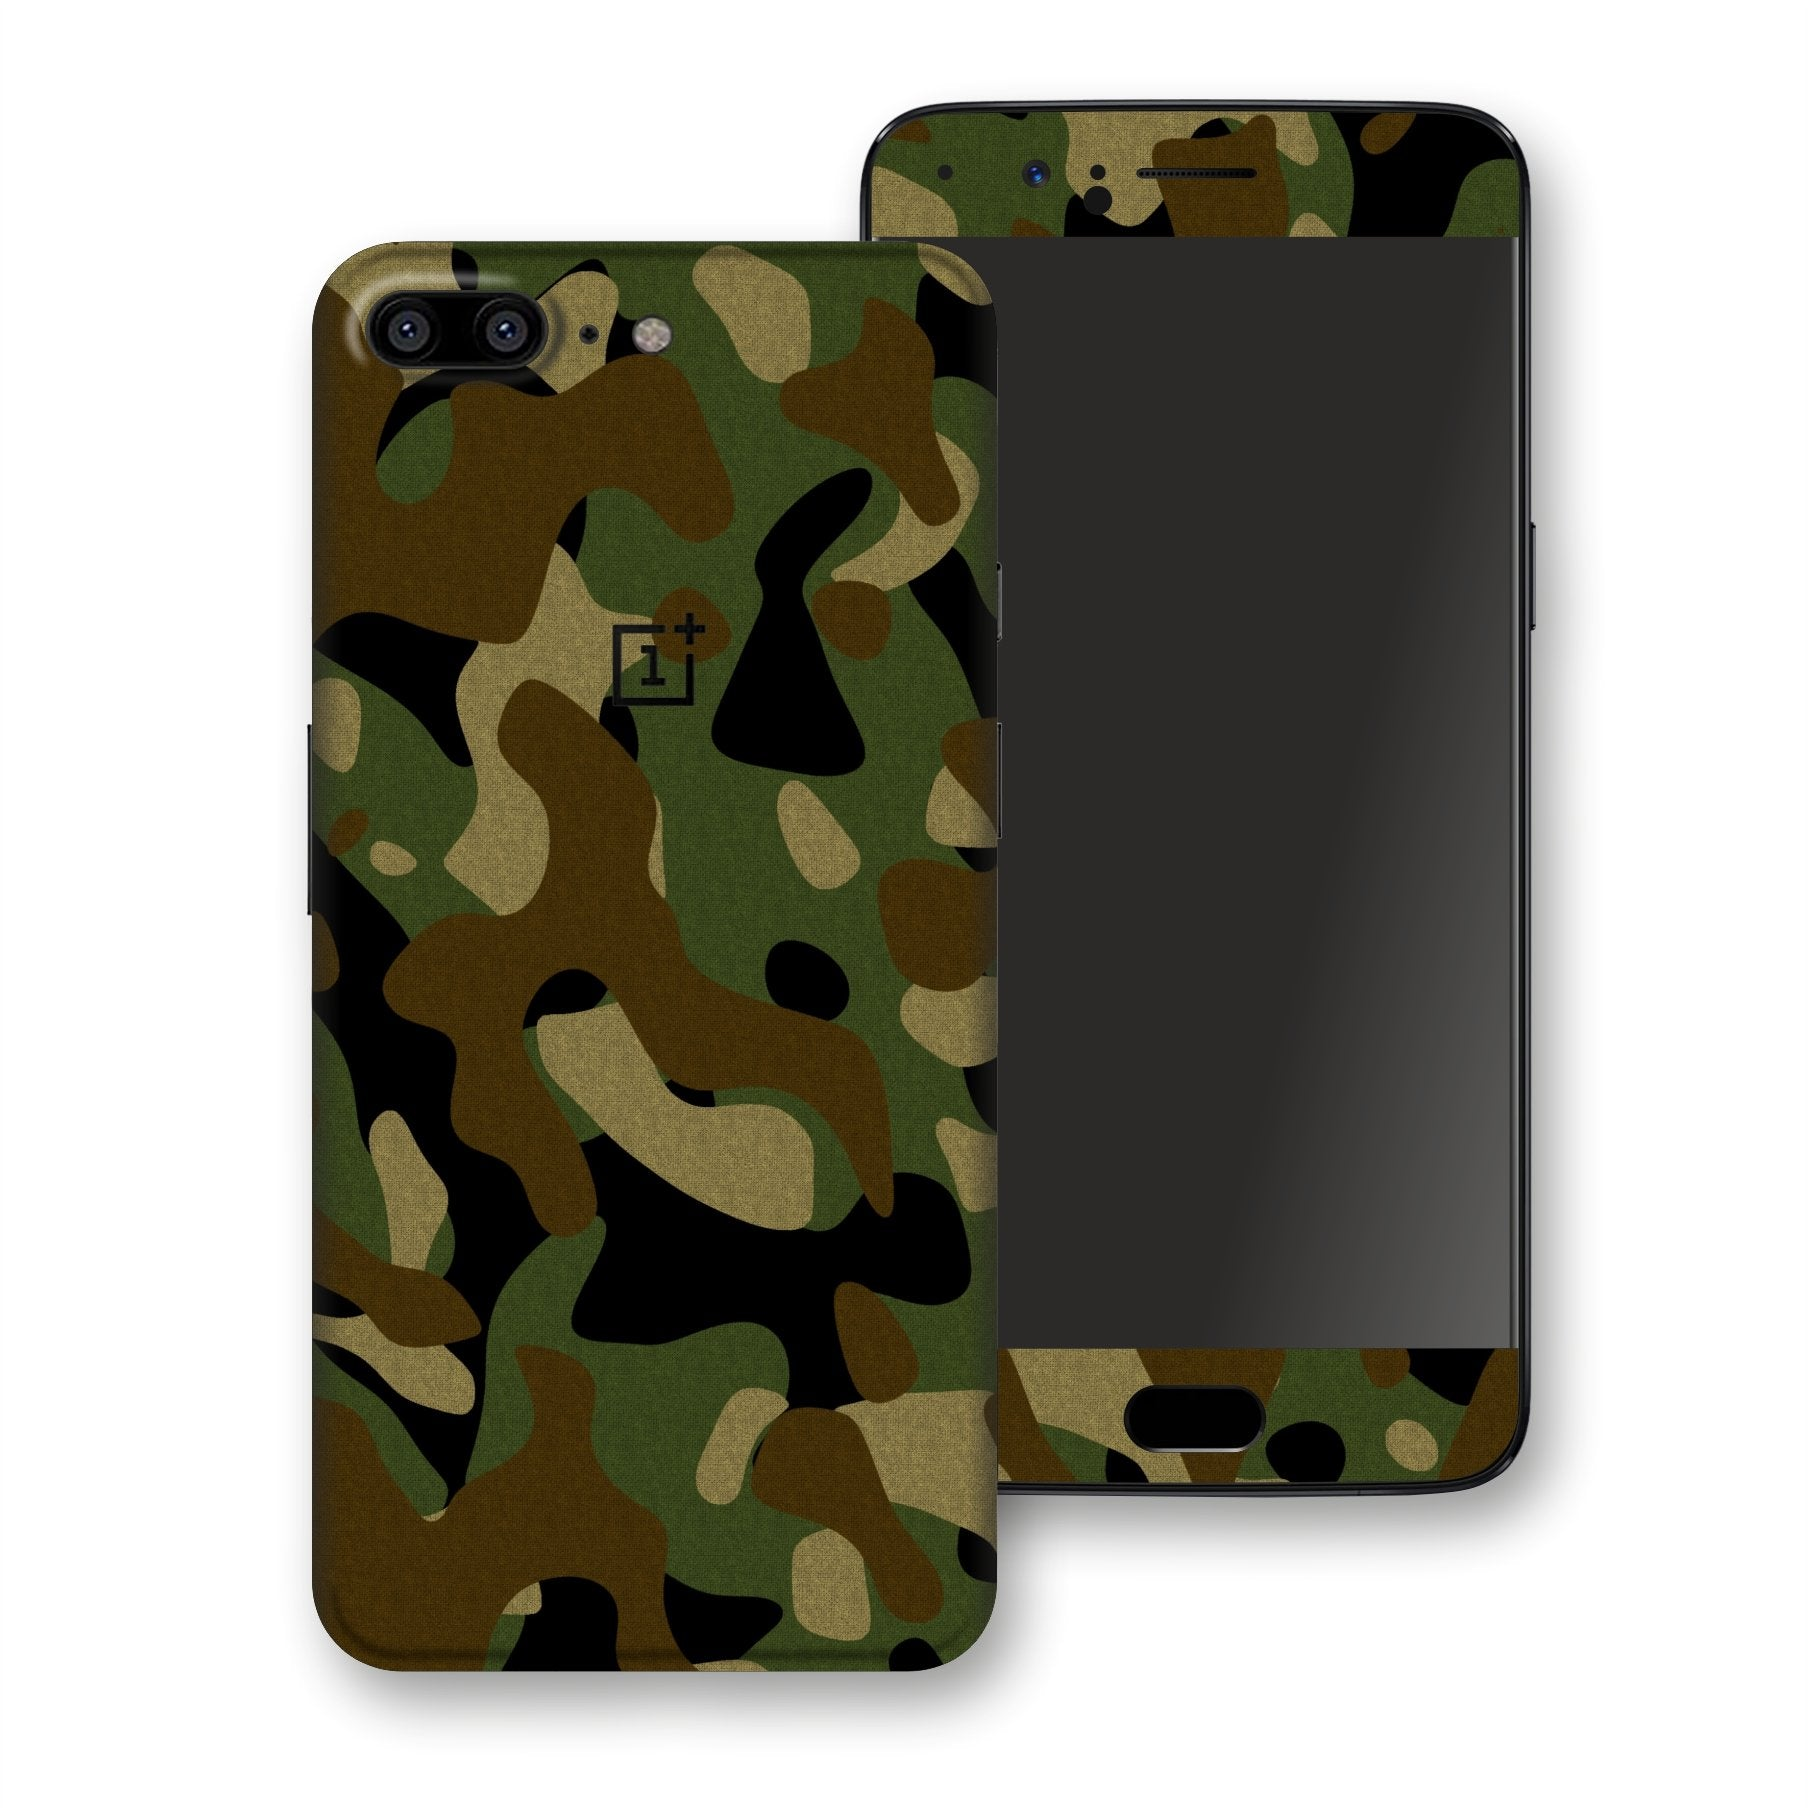 OnePlus 5 Camouflage Classic Skin, Decal, Wrap, Protector, Cover by EasySkinz | EasySkinz.com